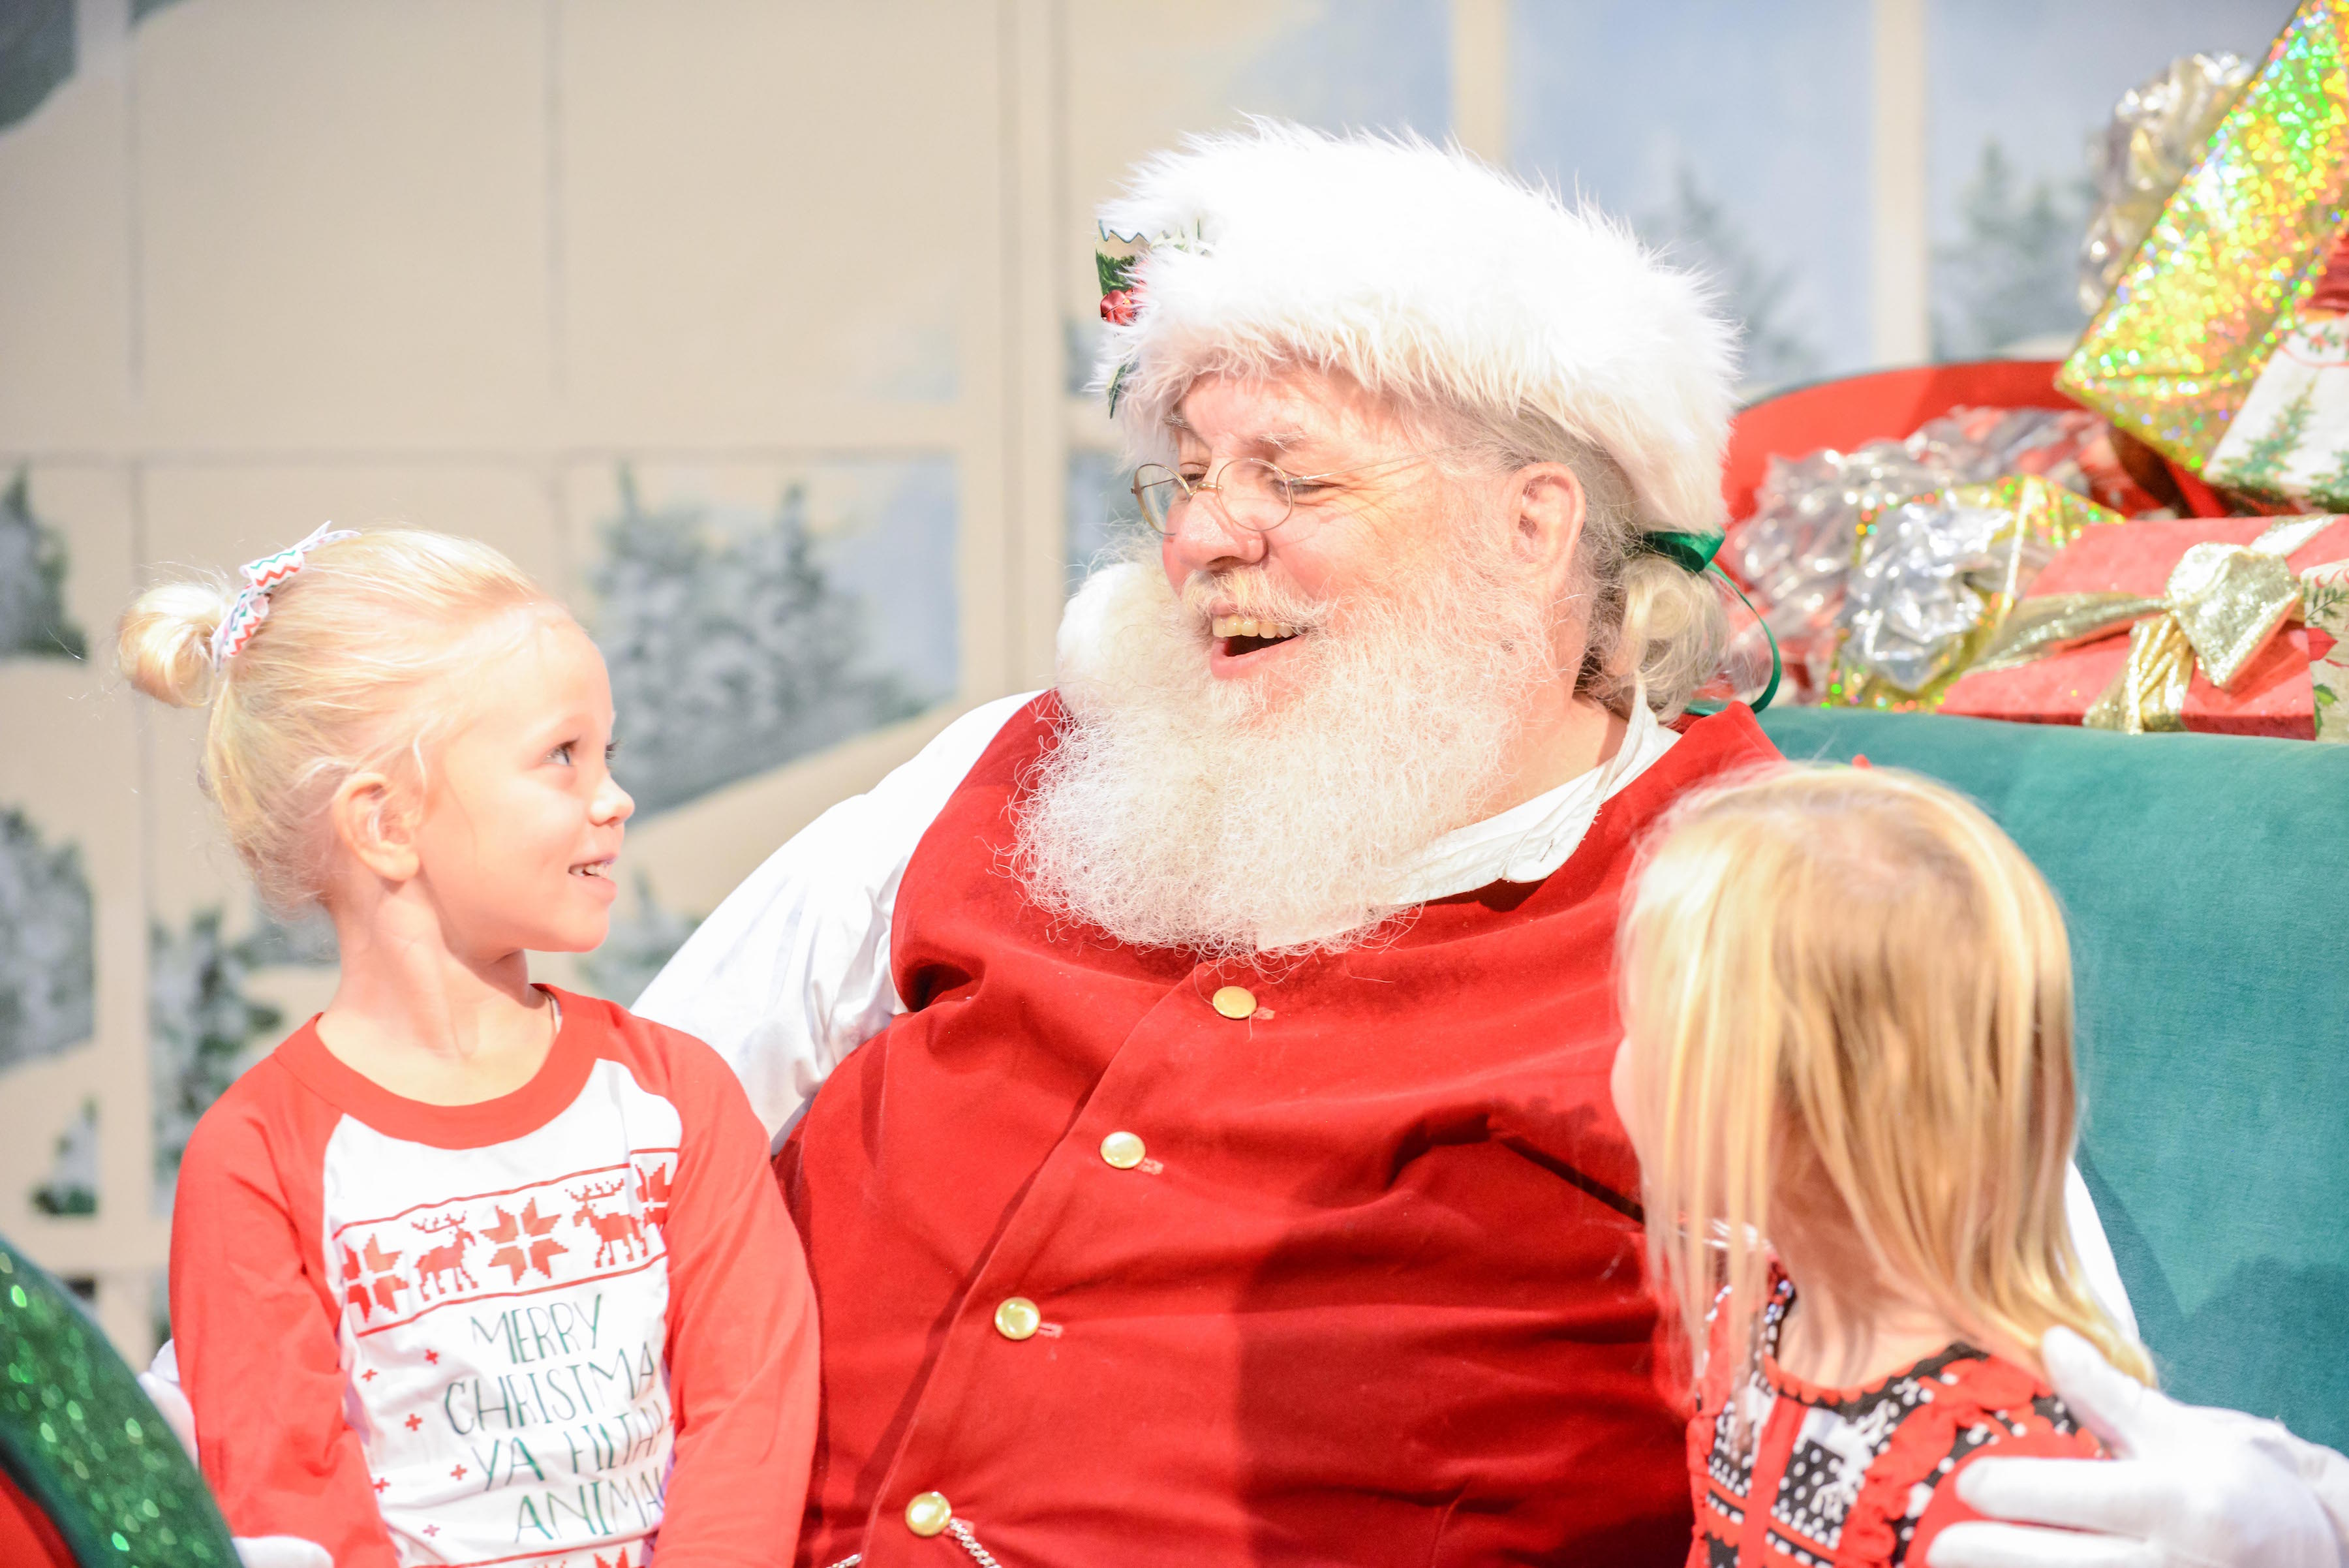 Christmas Show Charlotte.Southern Christmas Show Arrives In Charlotte This November The Mint